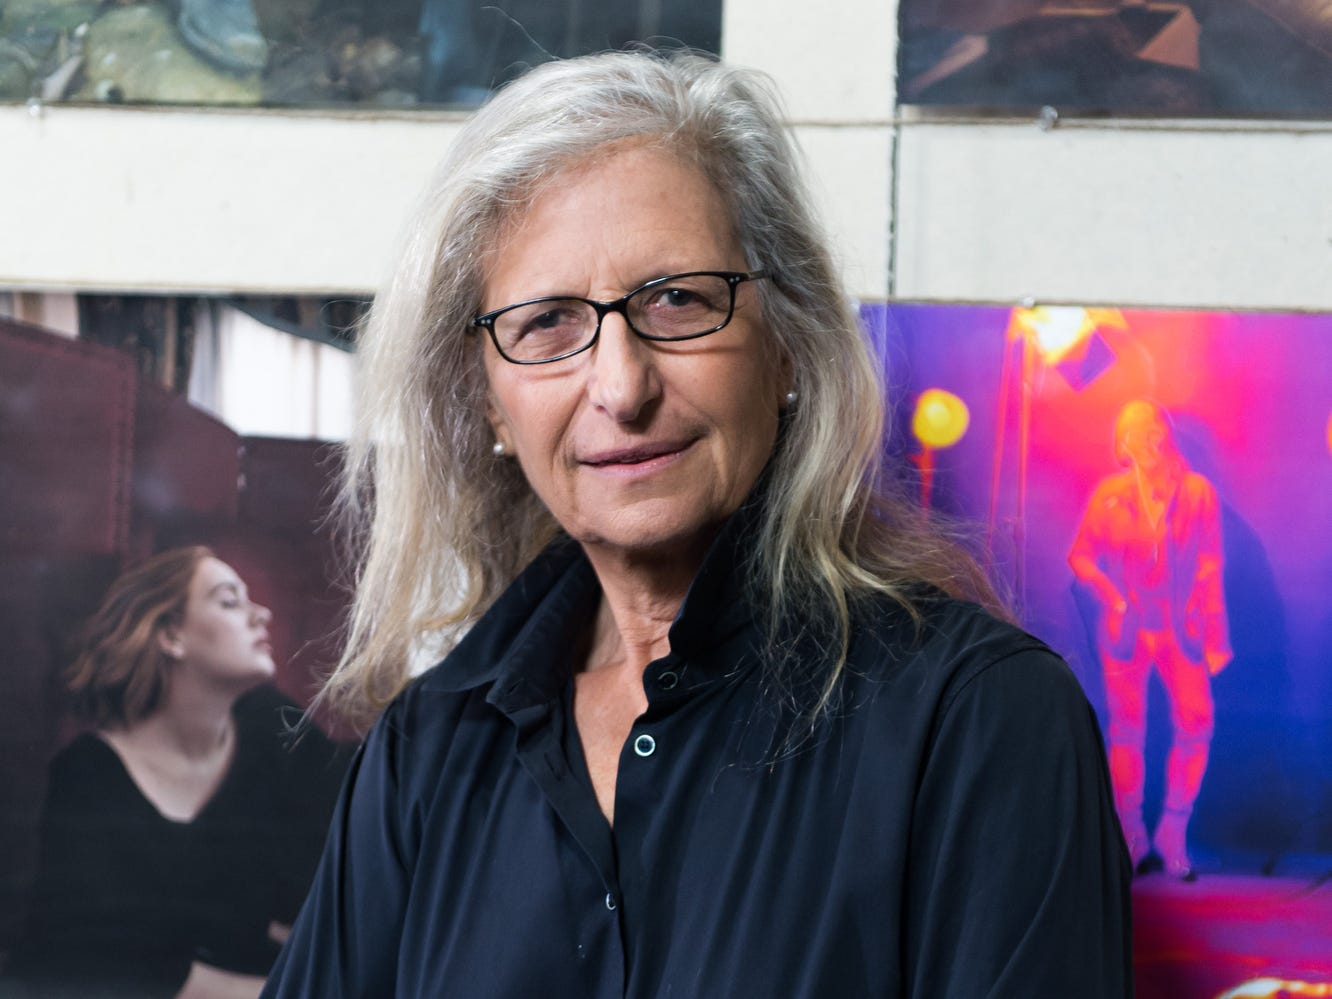 NOV. 27